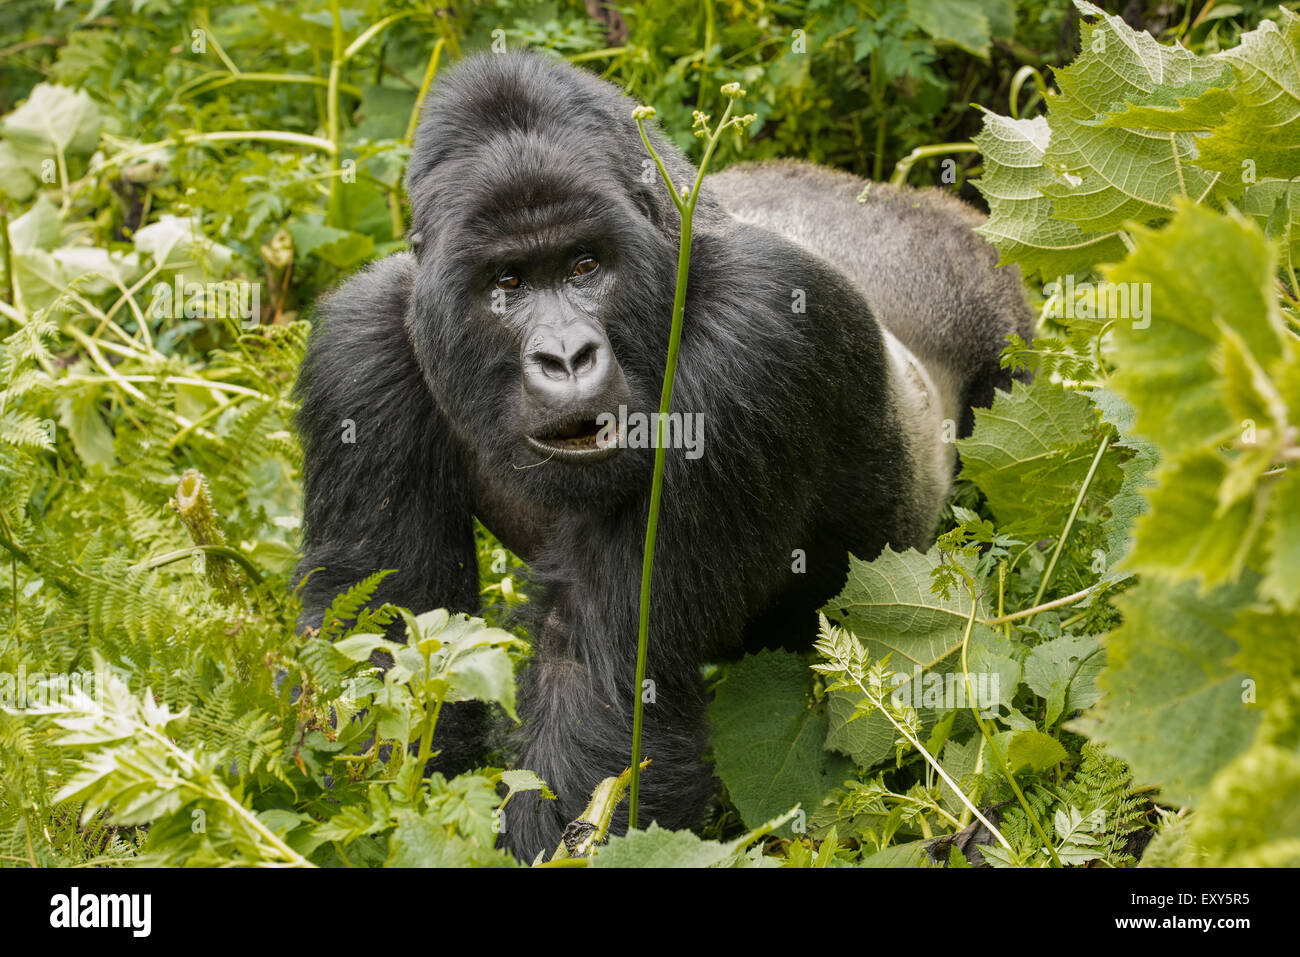 Silverback gorilla in vegetation, Rwanda - Stock Image